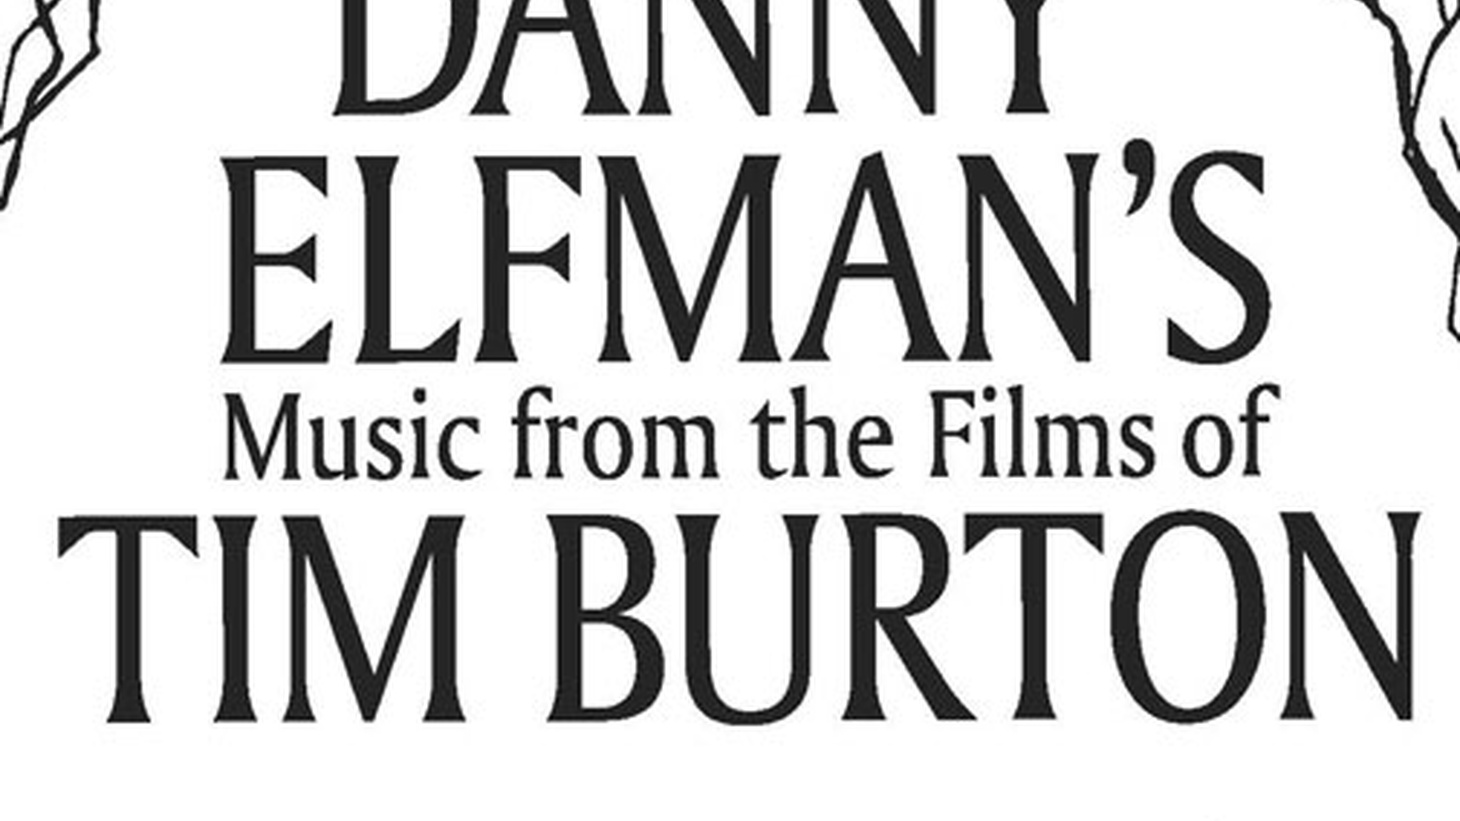 In the 10 o'clockhour, film composer Danny Elfmanon his forthcoming Los Angeles concert of his work from the films of Tim Burton.